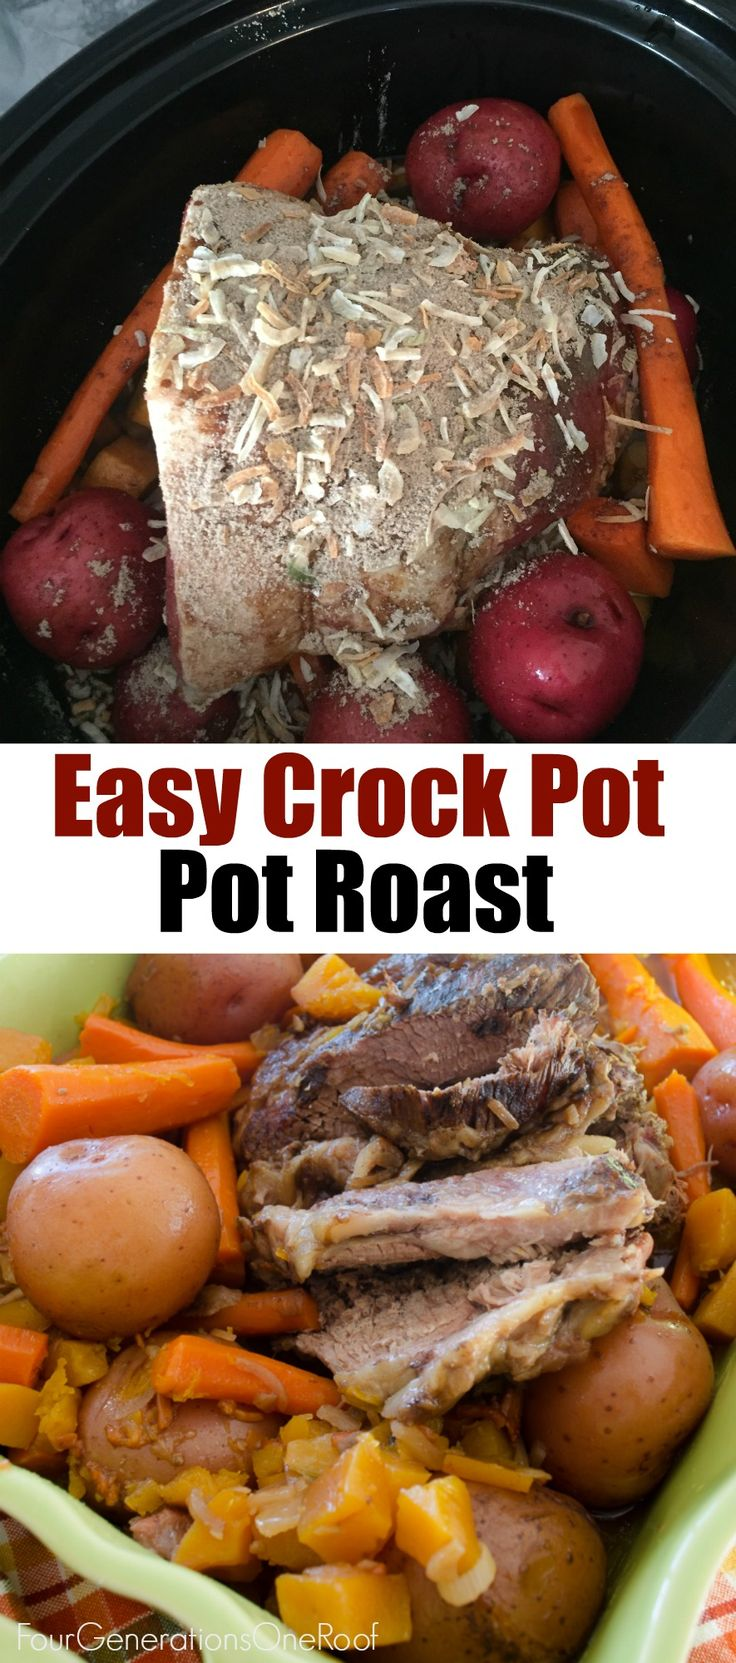 Our easy crock pot pot recipe with potatoes, carrots, worcestershire sauce, lipton onion soup mix and squash.